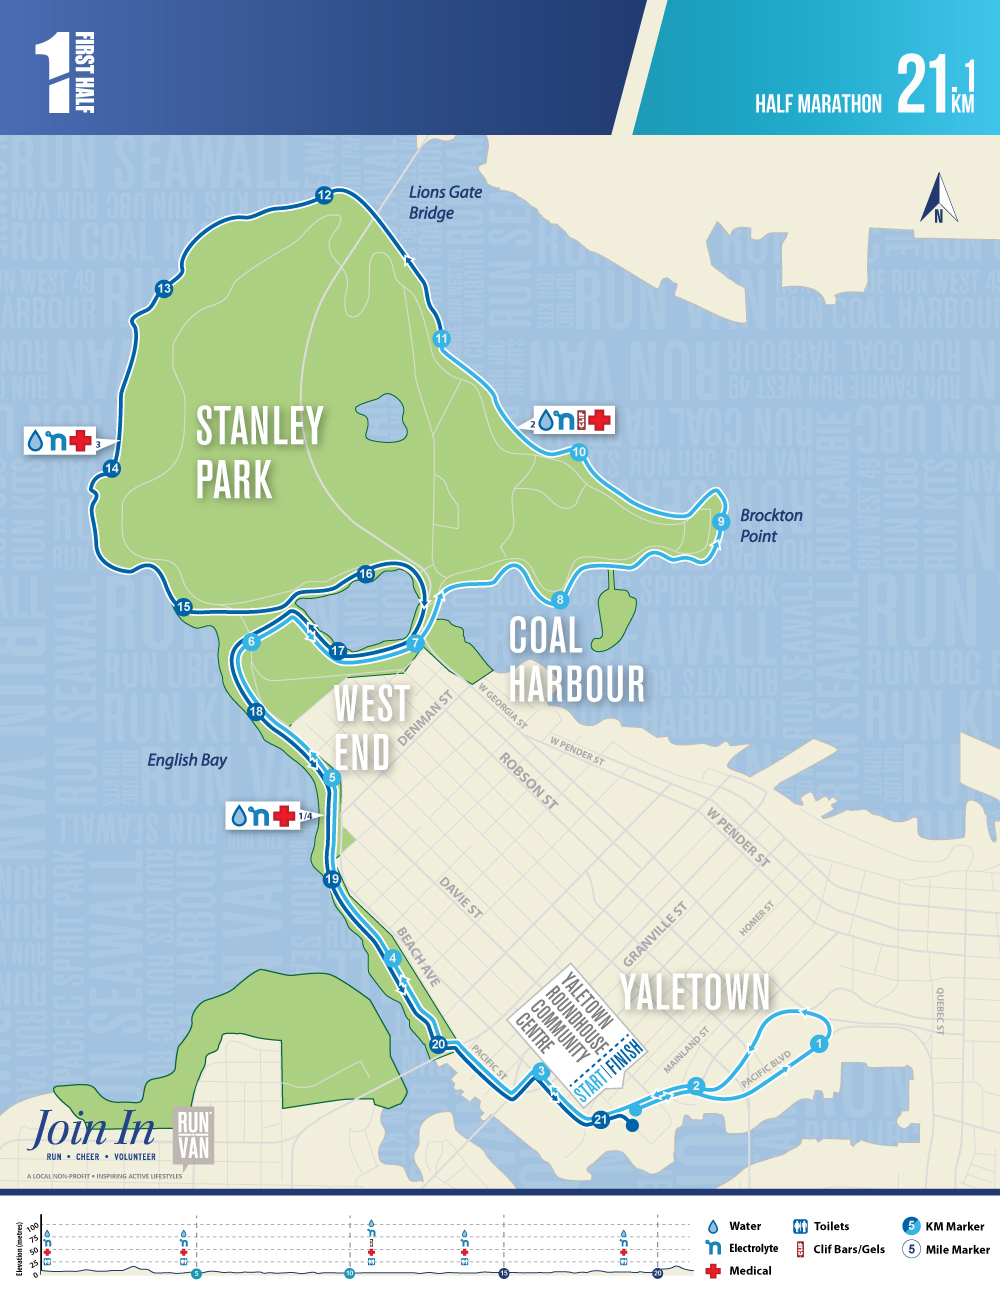 First Half Half Marathon Course Map